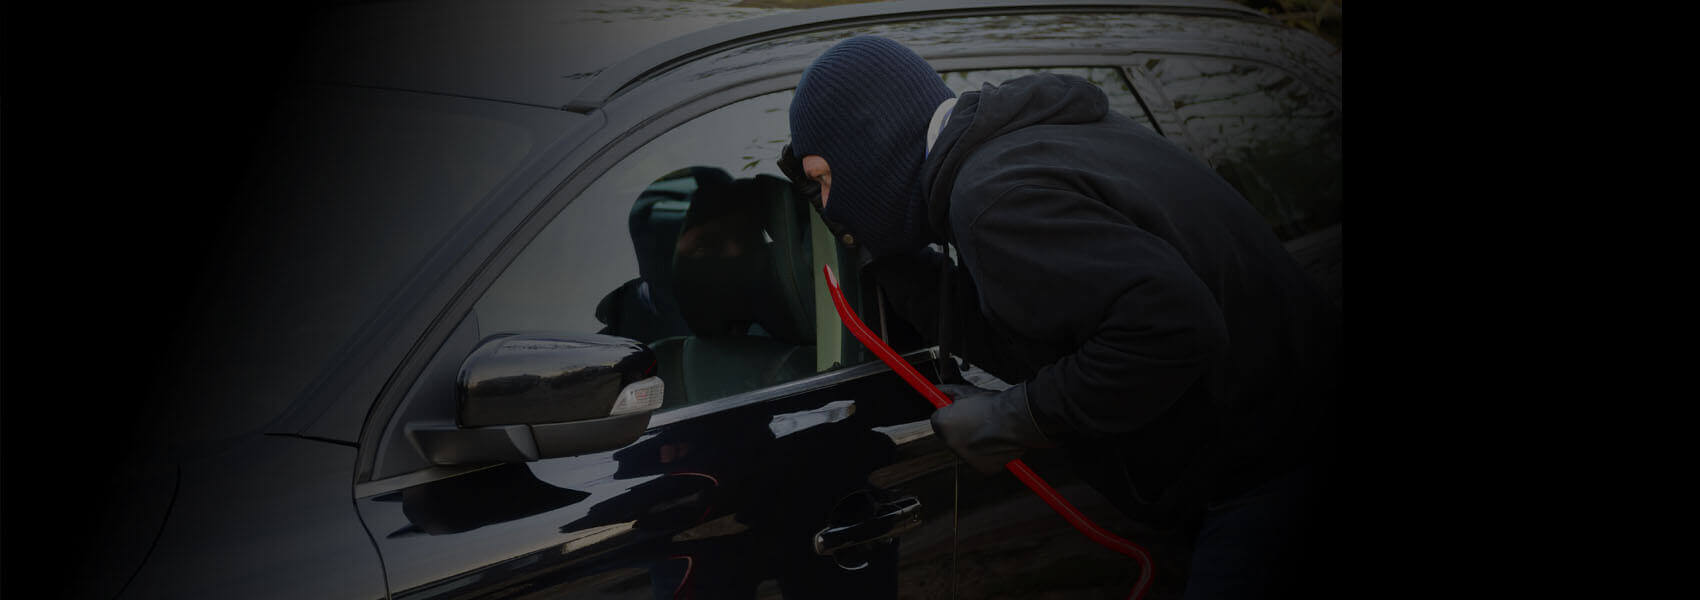 24 hour cover for theft of equipment from all vehicles as standard